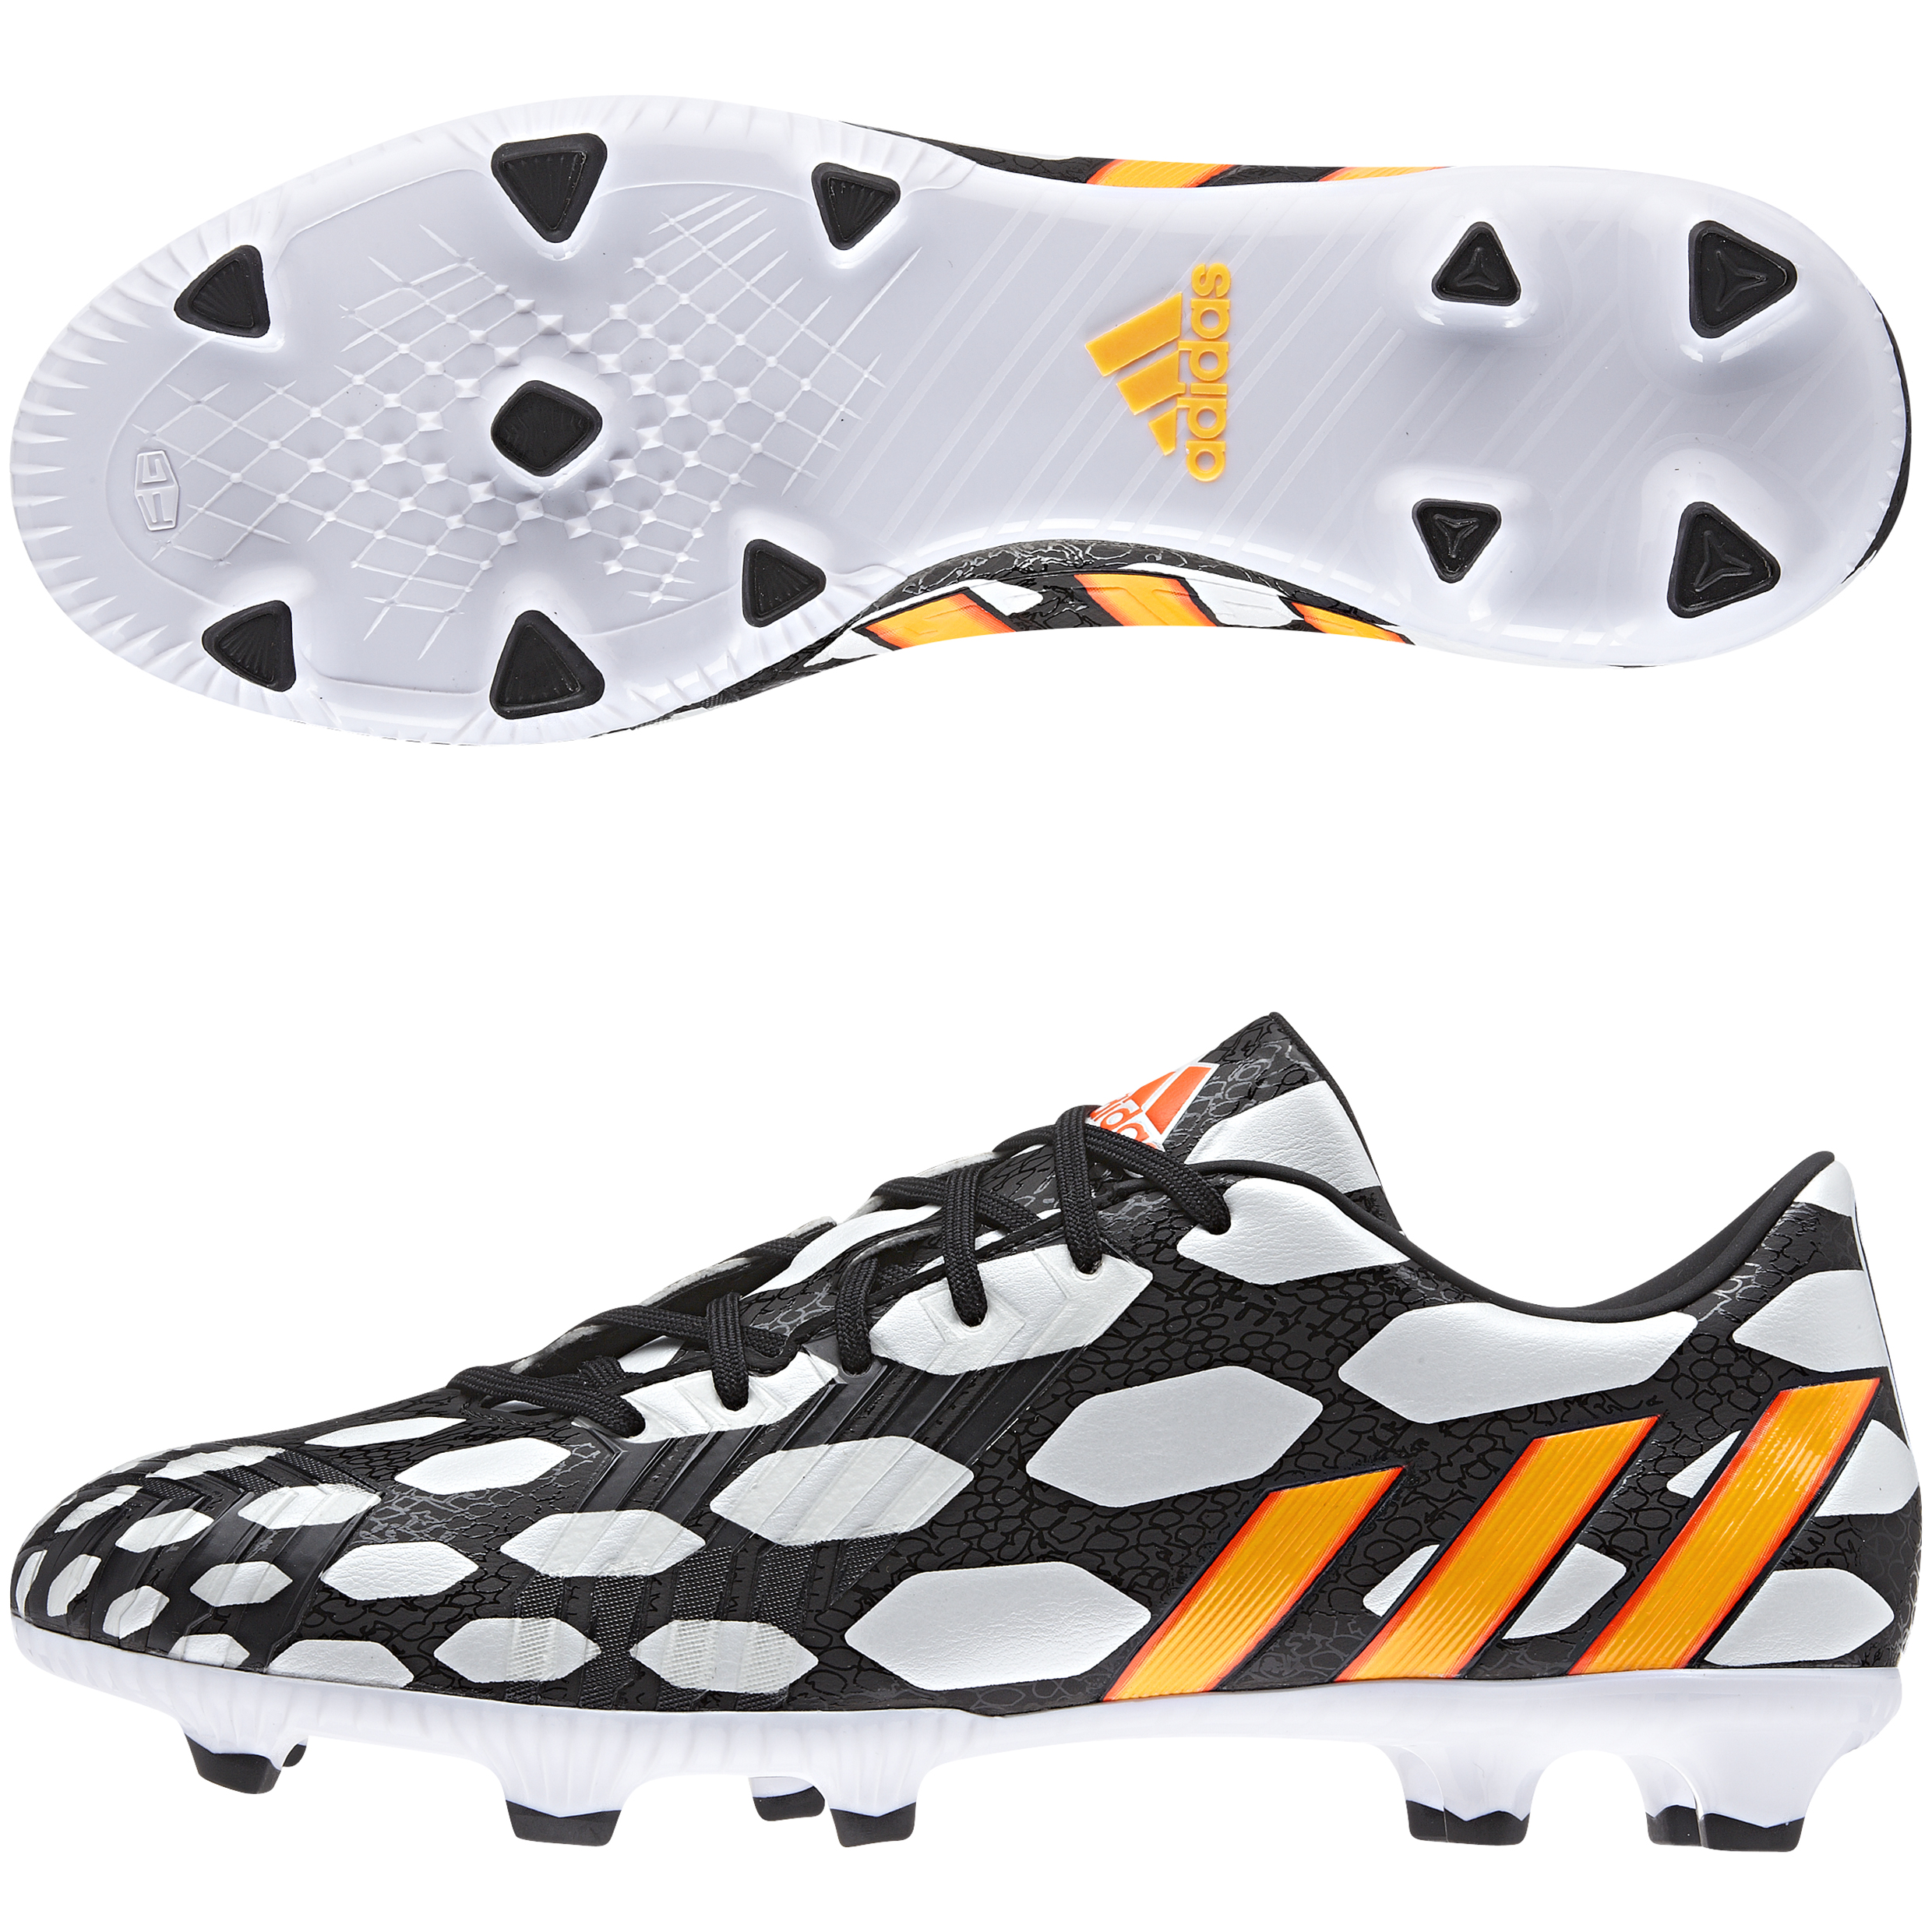 Adidas Predator Absolado LZ World Cup 2014 Firm Ground Football Boots Black